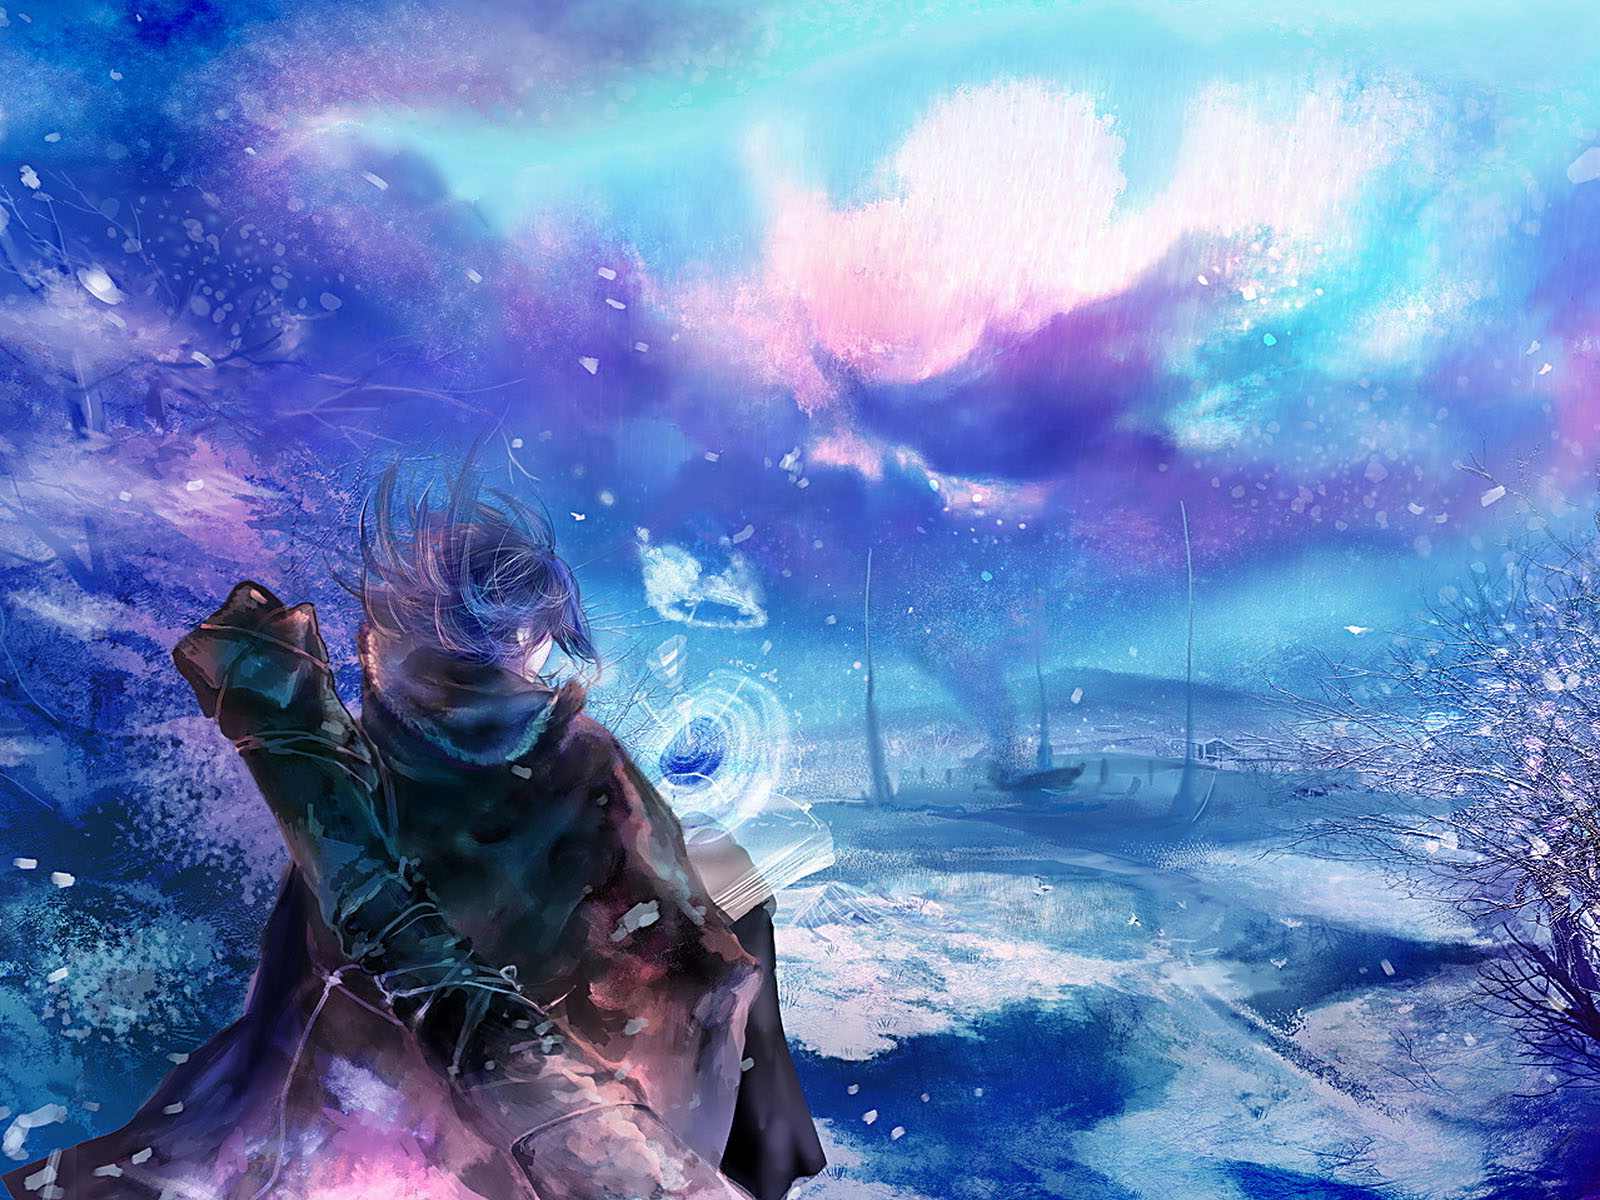 Best Wallpapers Collection: Best Anime girls Wallpapers II